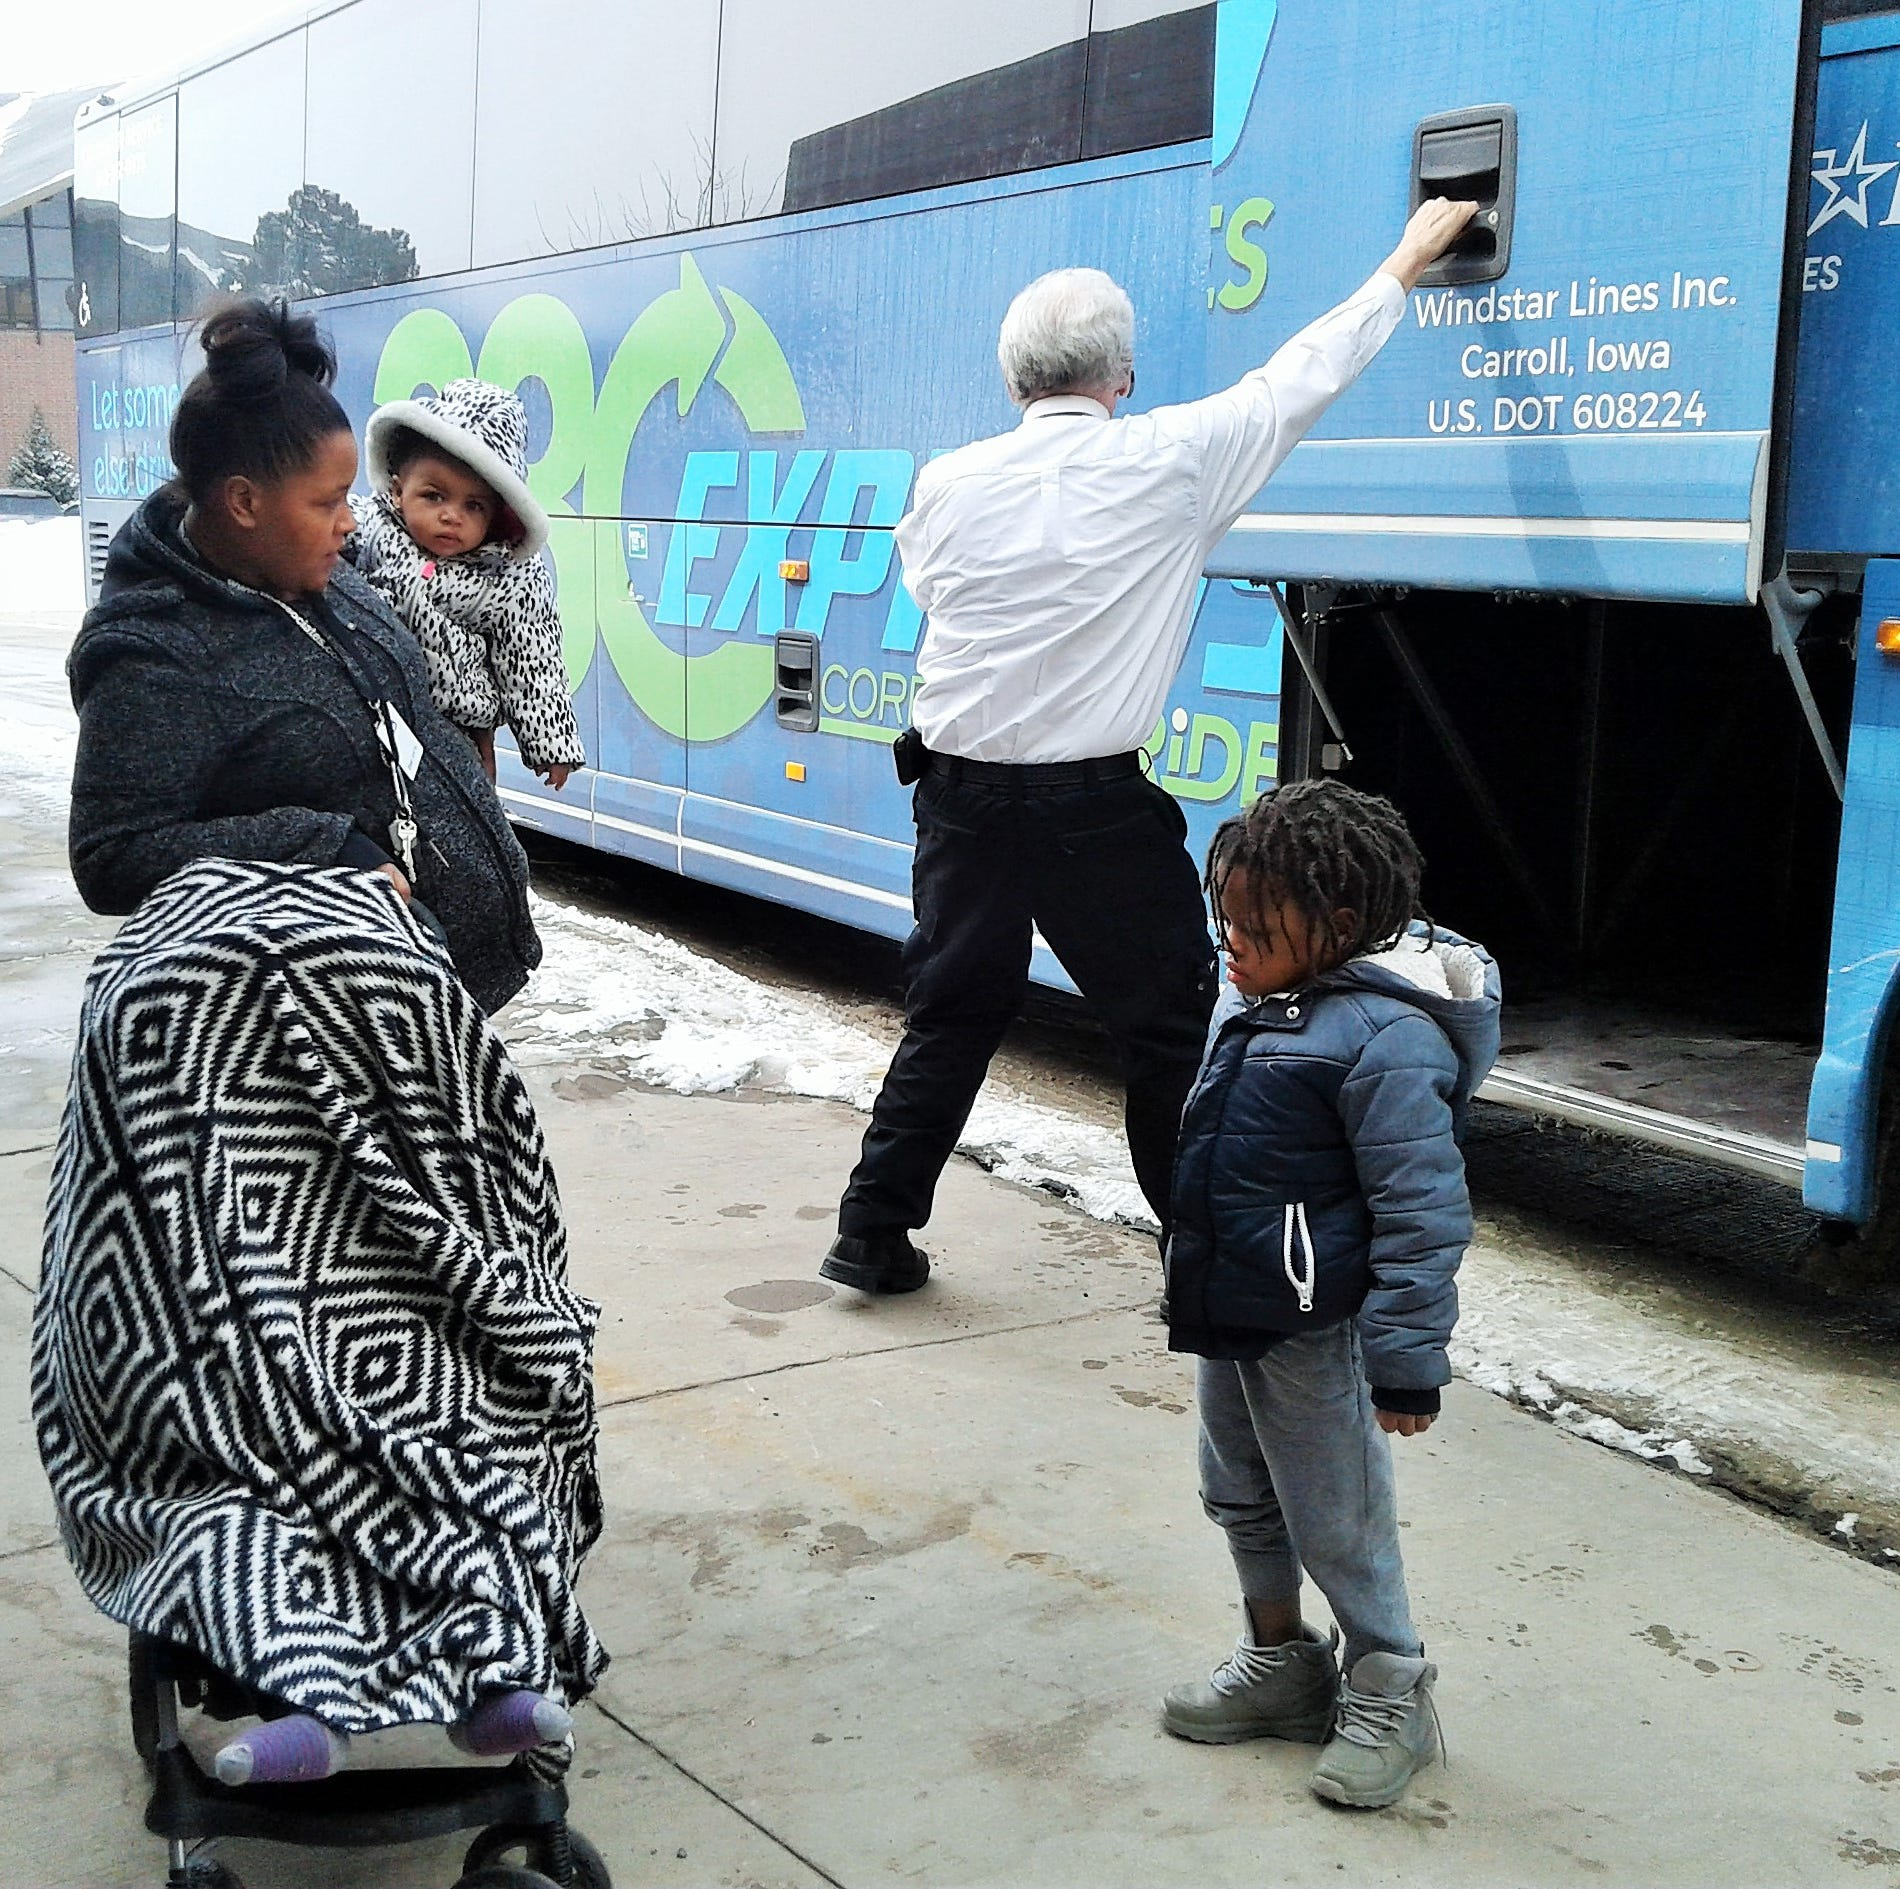 380 Express a hit so far with commuters, families